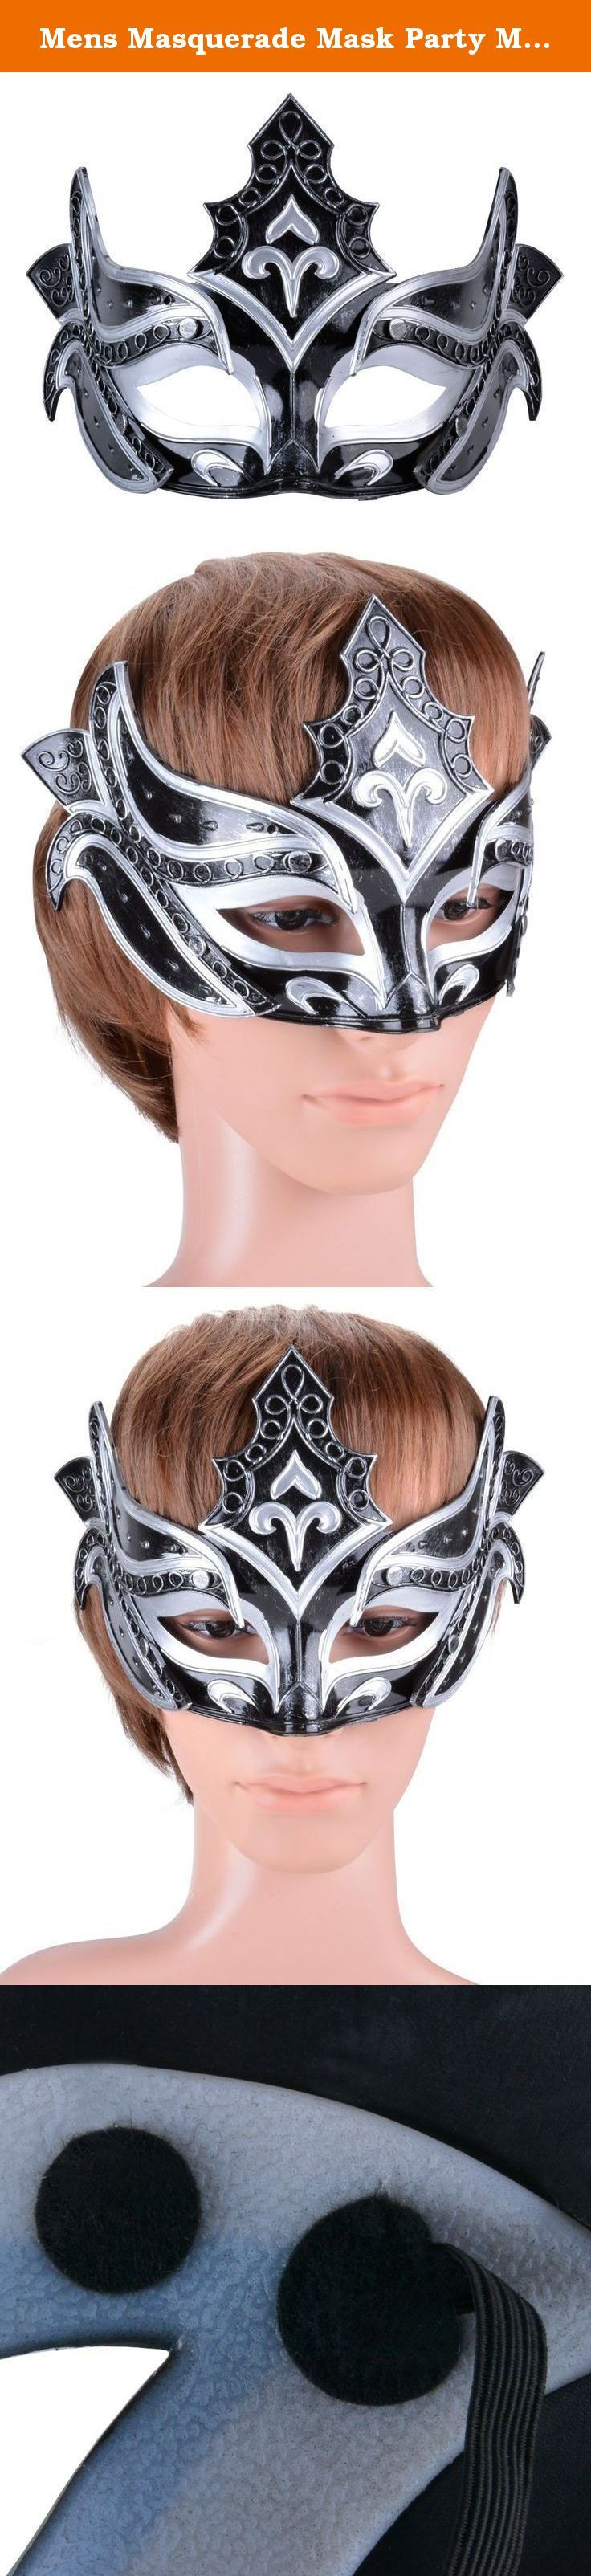 Mens Masquerade Mask Party Mask Roman Gladiator Cosplay Halloween Mask Black (Black). Perfect for Halloween/Christmas carnivals,masquerade, mardi gras, party ball prom , costume cosplay party ,fashion shows , wedding,mask events , night club and so on. .